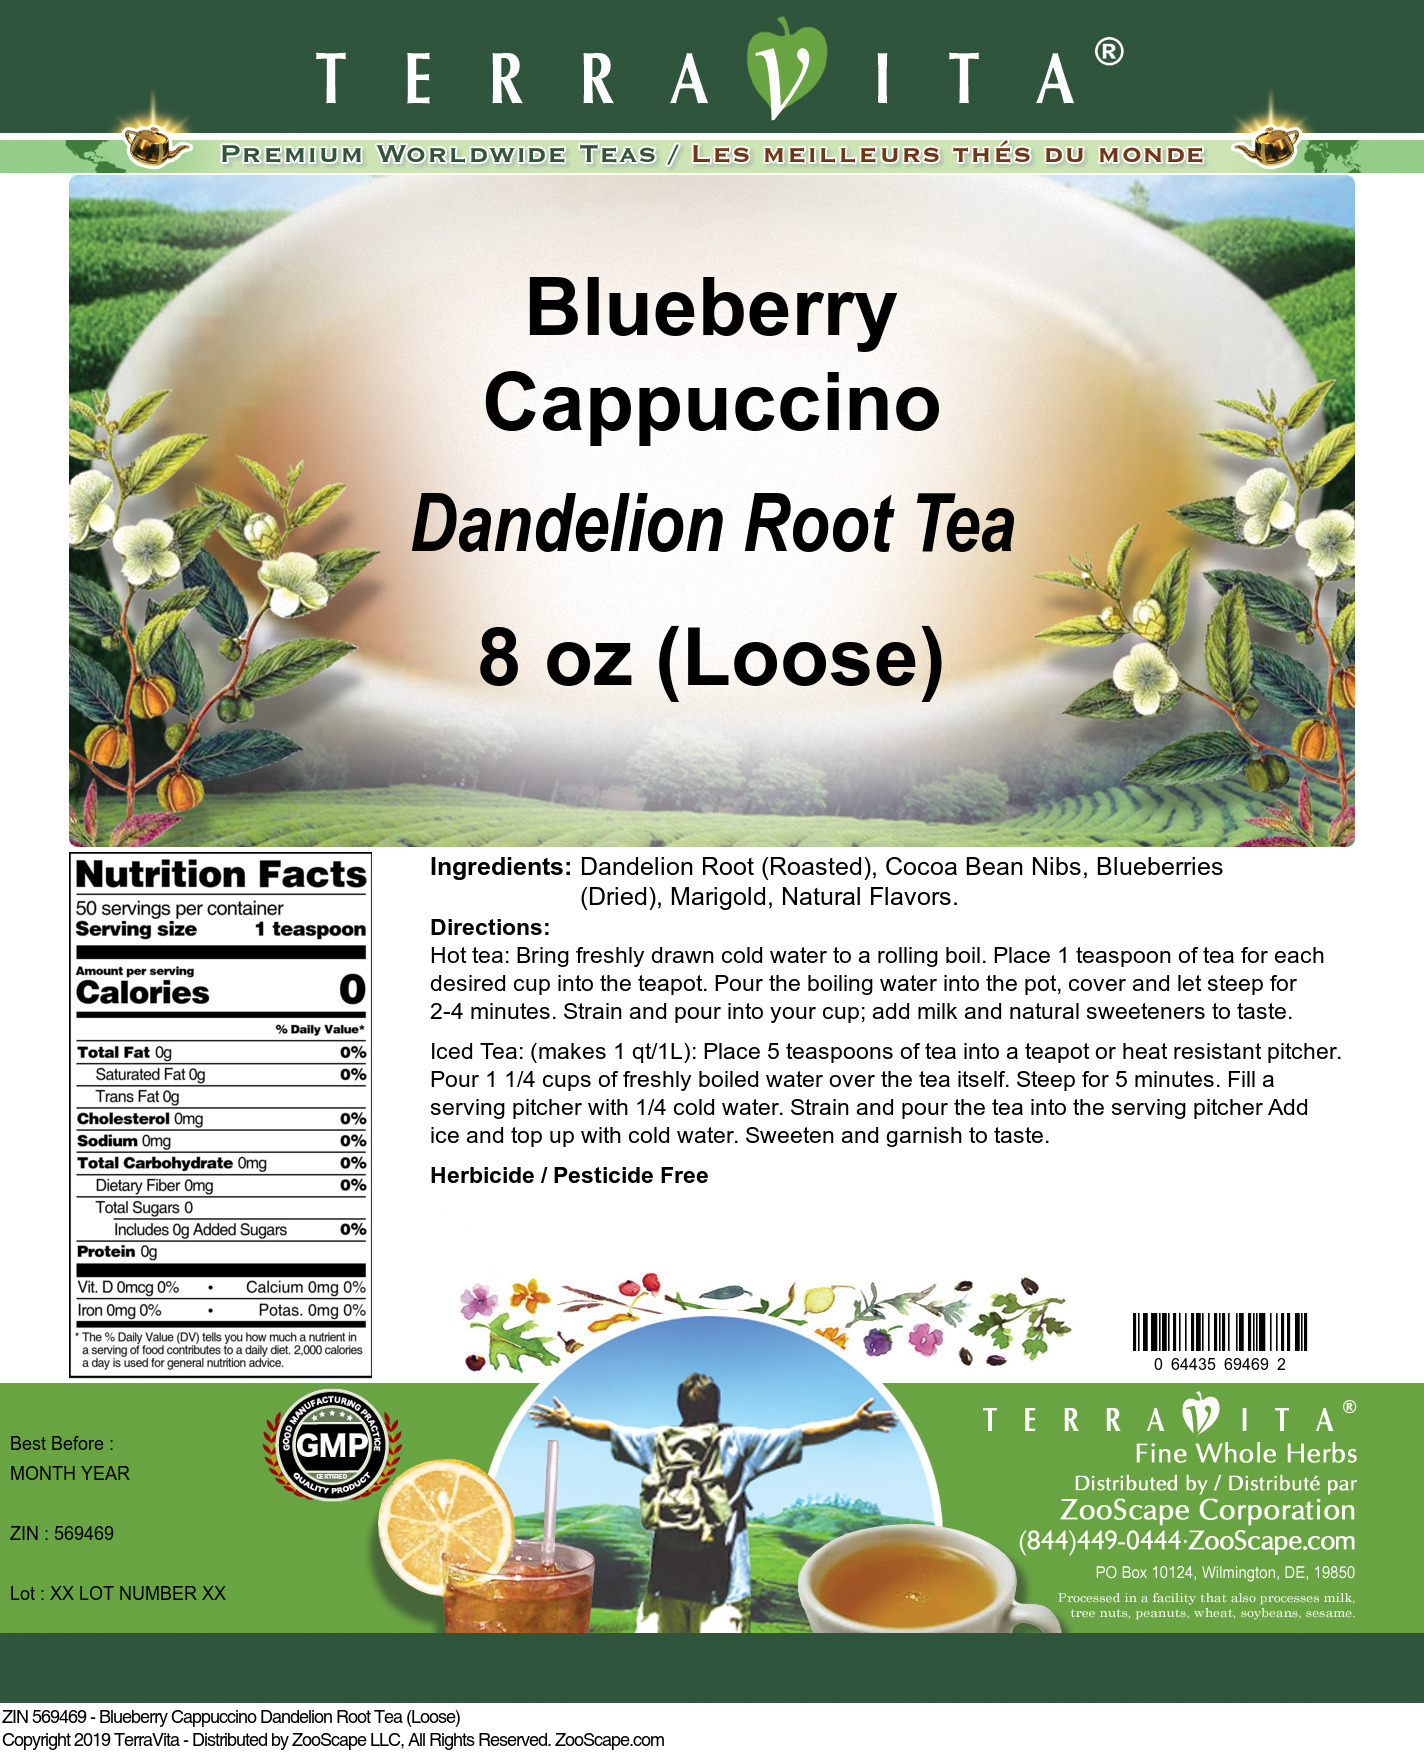 Blueberry Cappuccino Dandelion Root